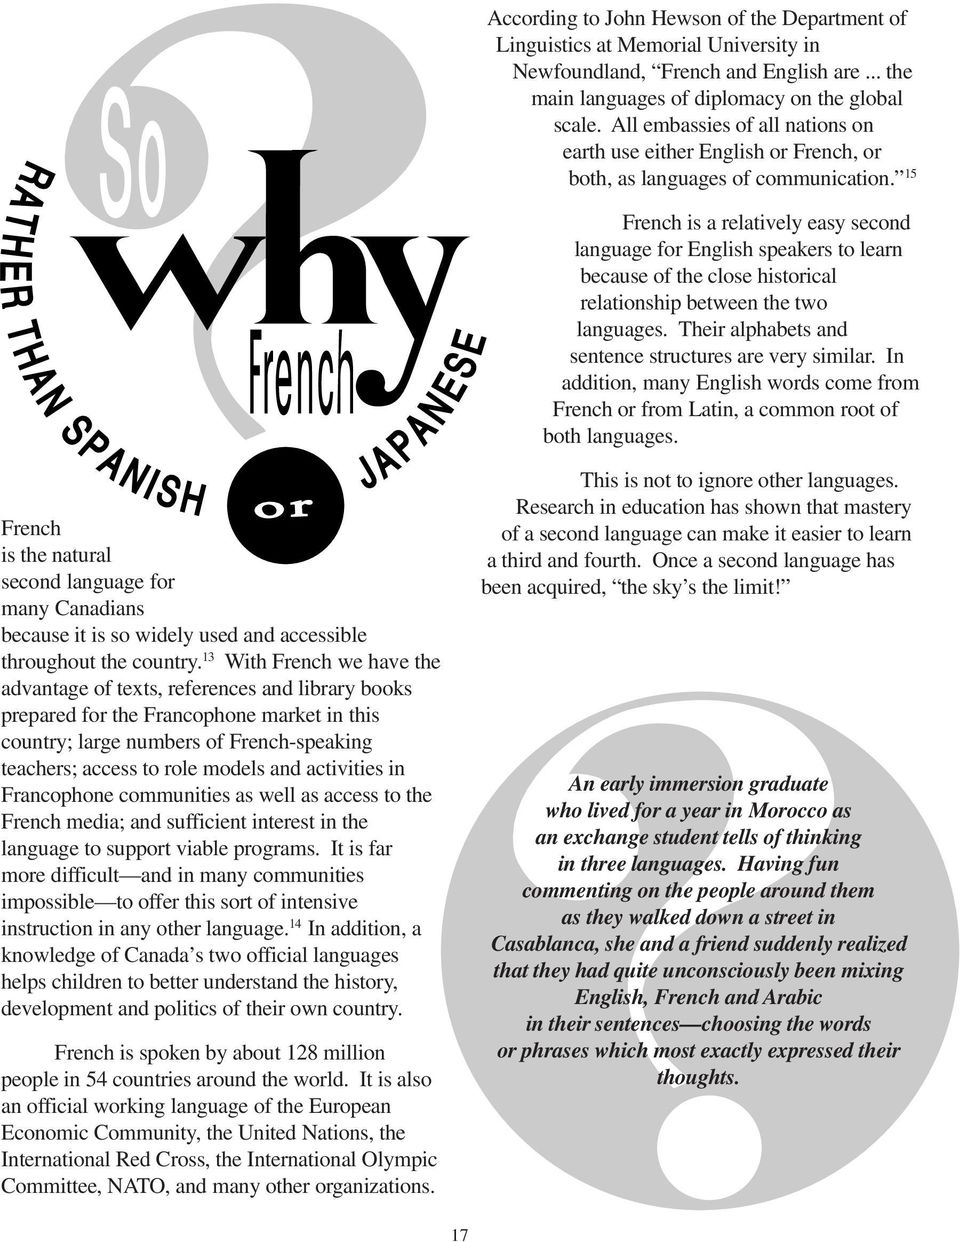 15 French is a relatively easy second language for English speakers to learn because of the close historical relationship between the two languages.